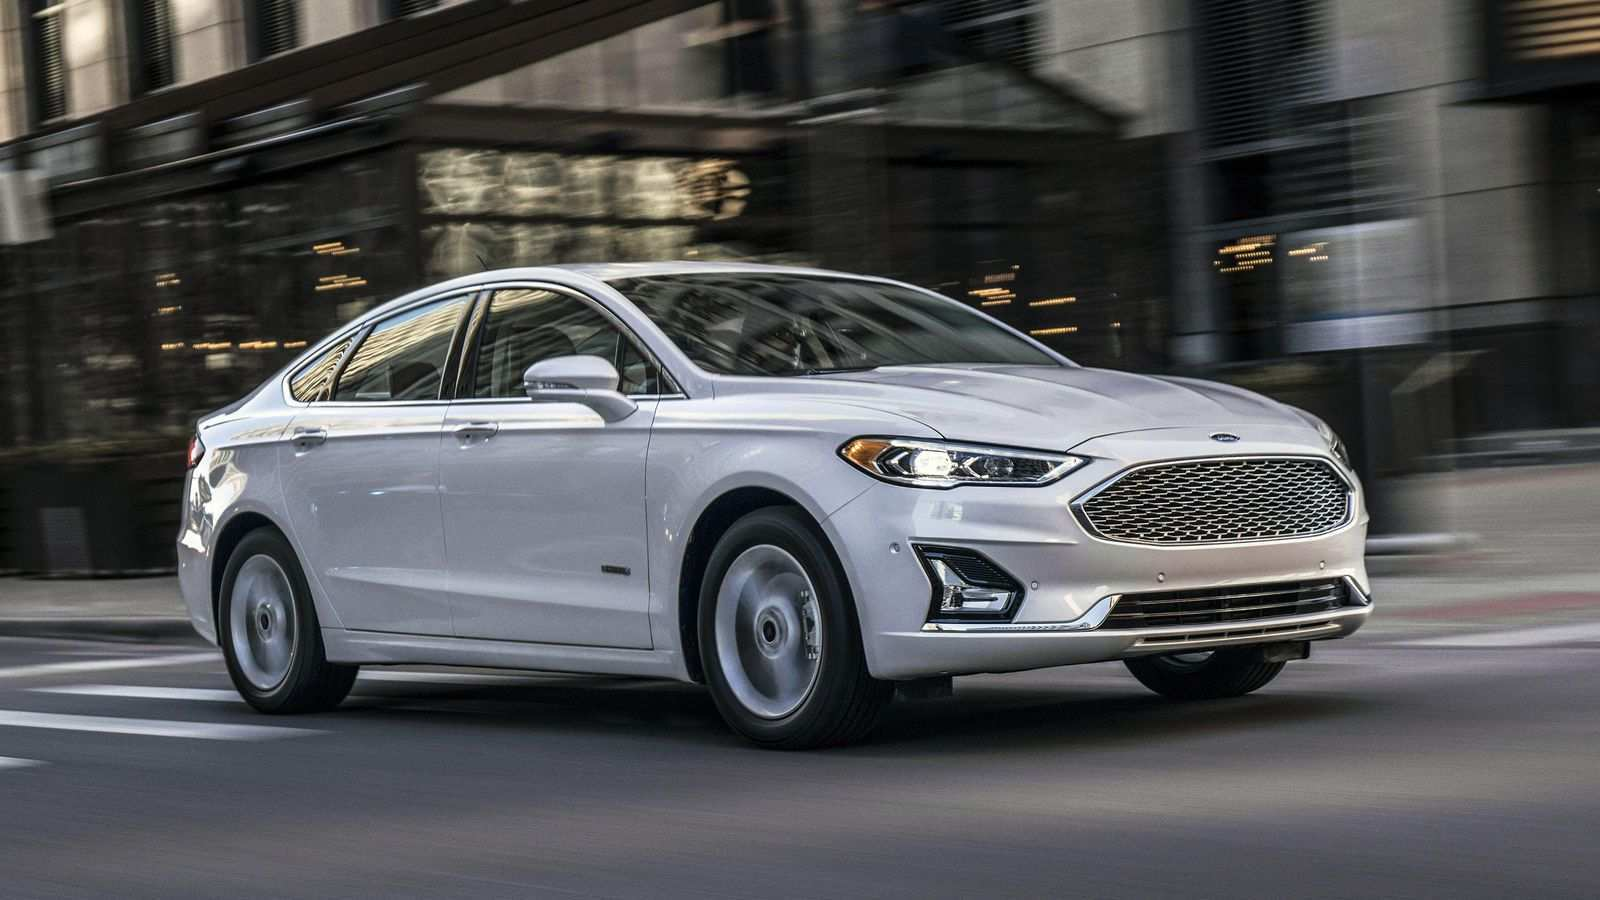 35 Gallery of Ford Discontinuing Cars In 2020 Redesign and Concept with Ford Discontinuing Cars In 2020